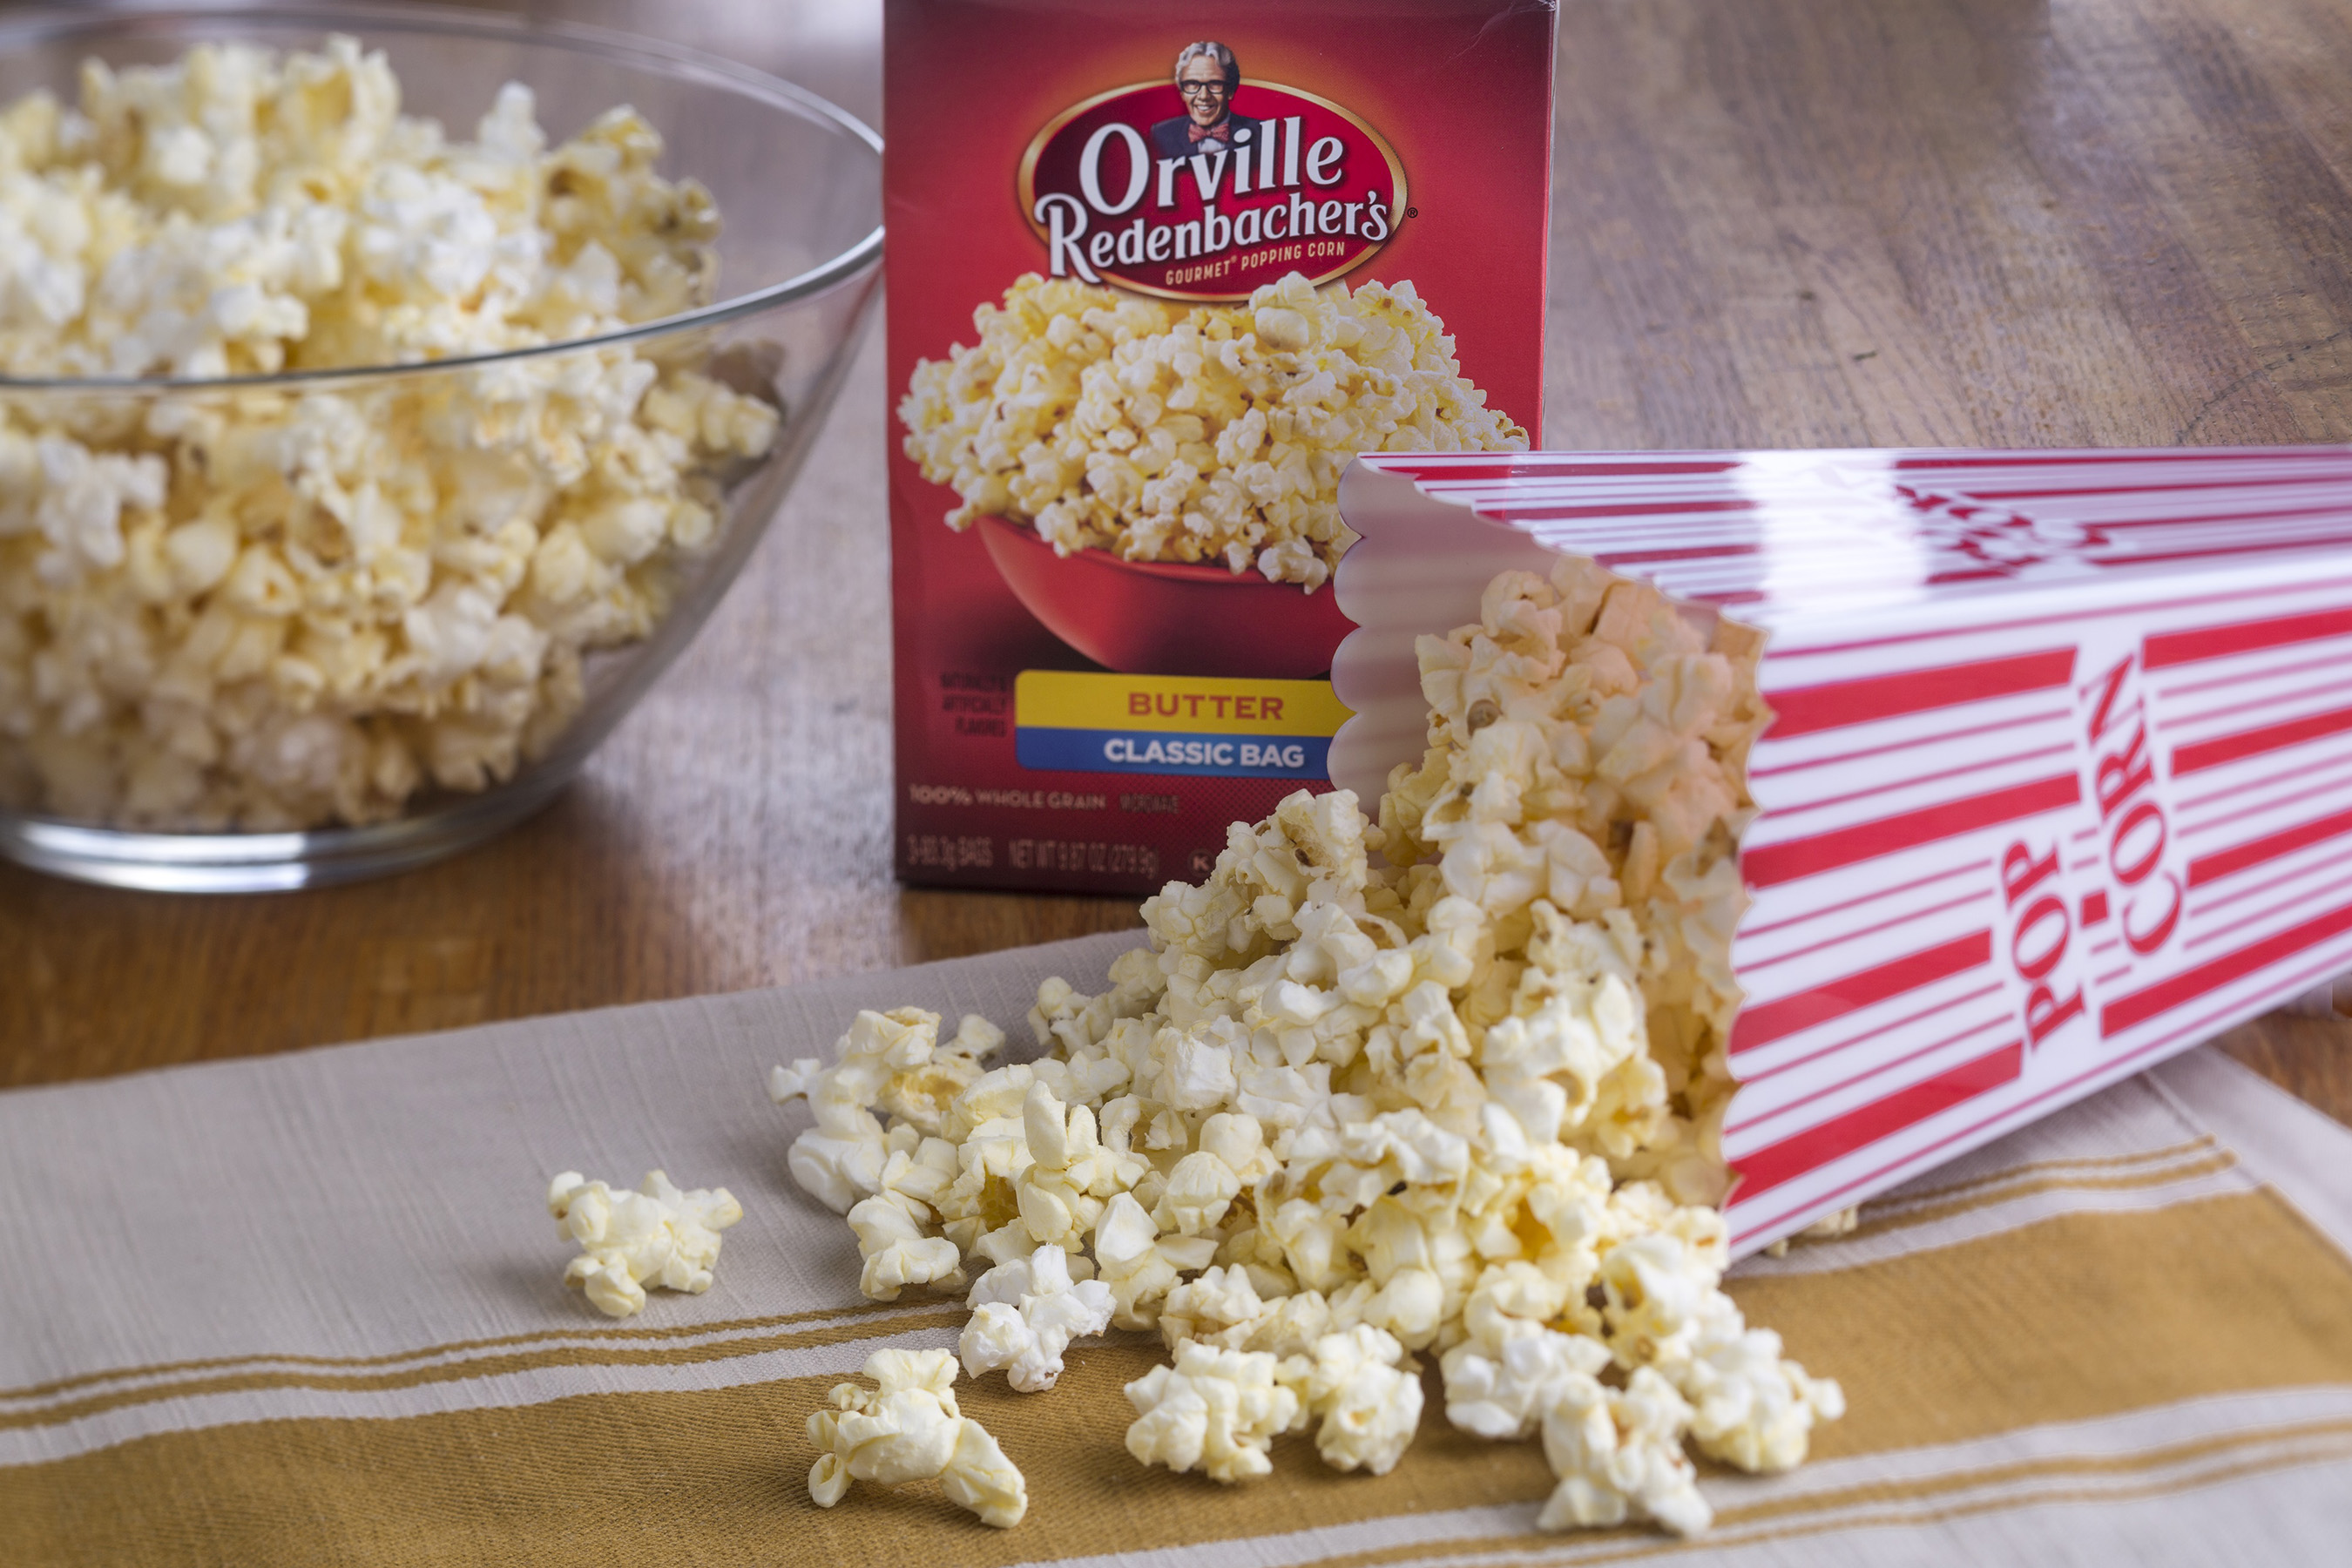 As the only leading microwave popcorn brand that uses real butter in many of its products, Orville Redenbacher's can be enjoyed on its own or serve as the main ingredient in a delicious recipe.